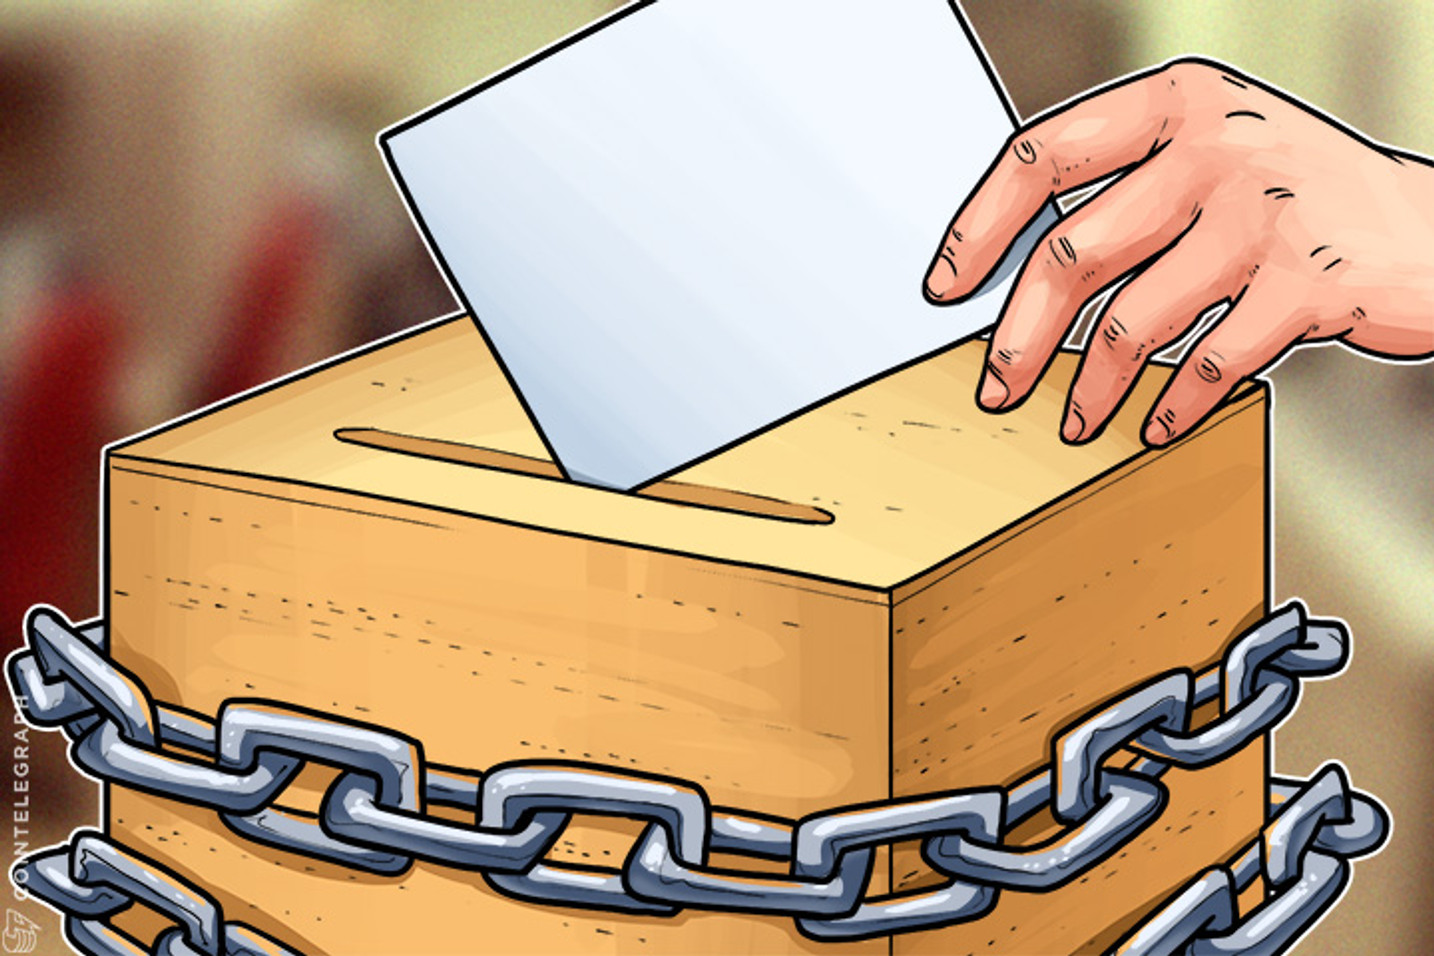 Blockchain May Help Prevent Voting Fraud, Increase Governments' Responsiveness